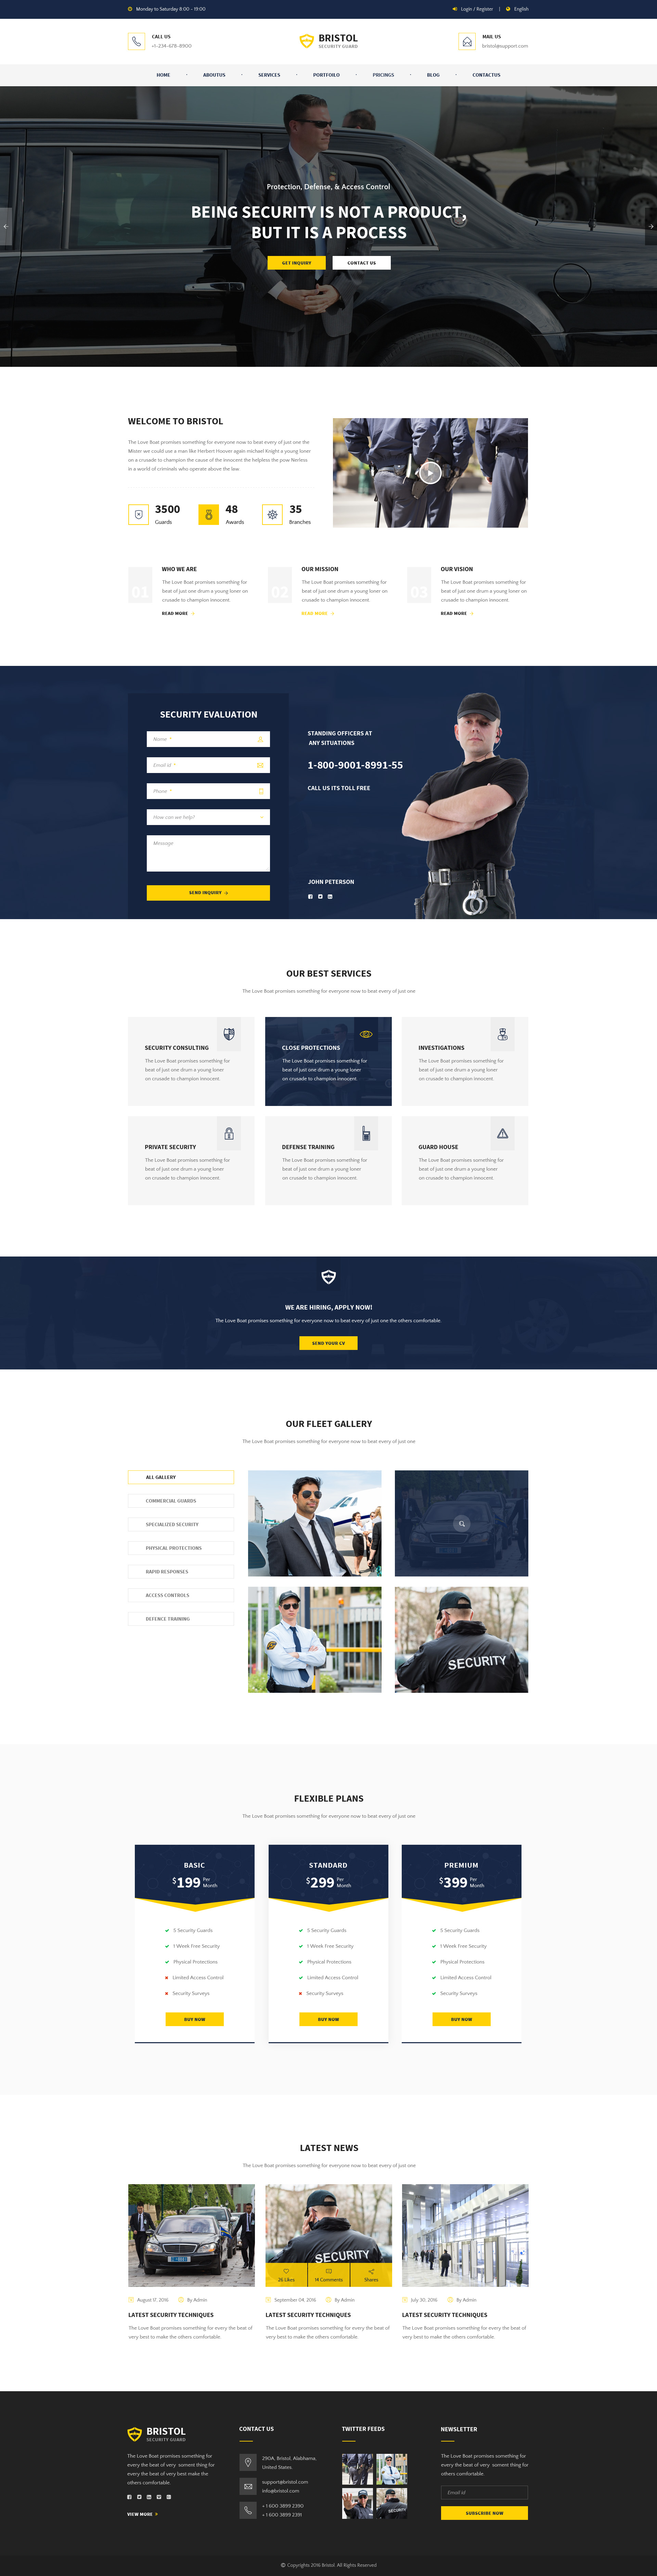 bristol security guard psd template by tonatheme themeforest bristol security guard preview 00 bristol preview jpg bristol security guard preview 01 homepage 01 jpg